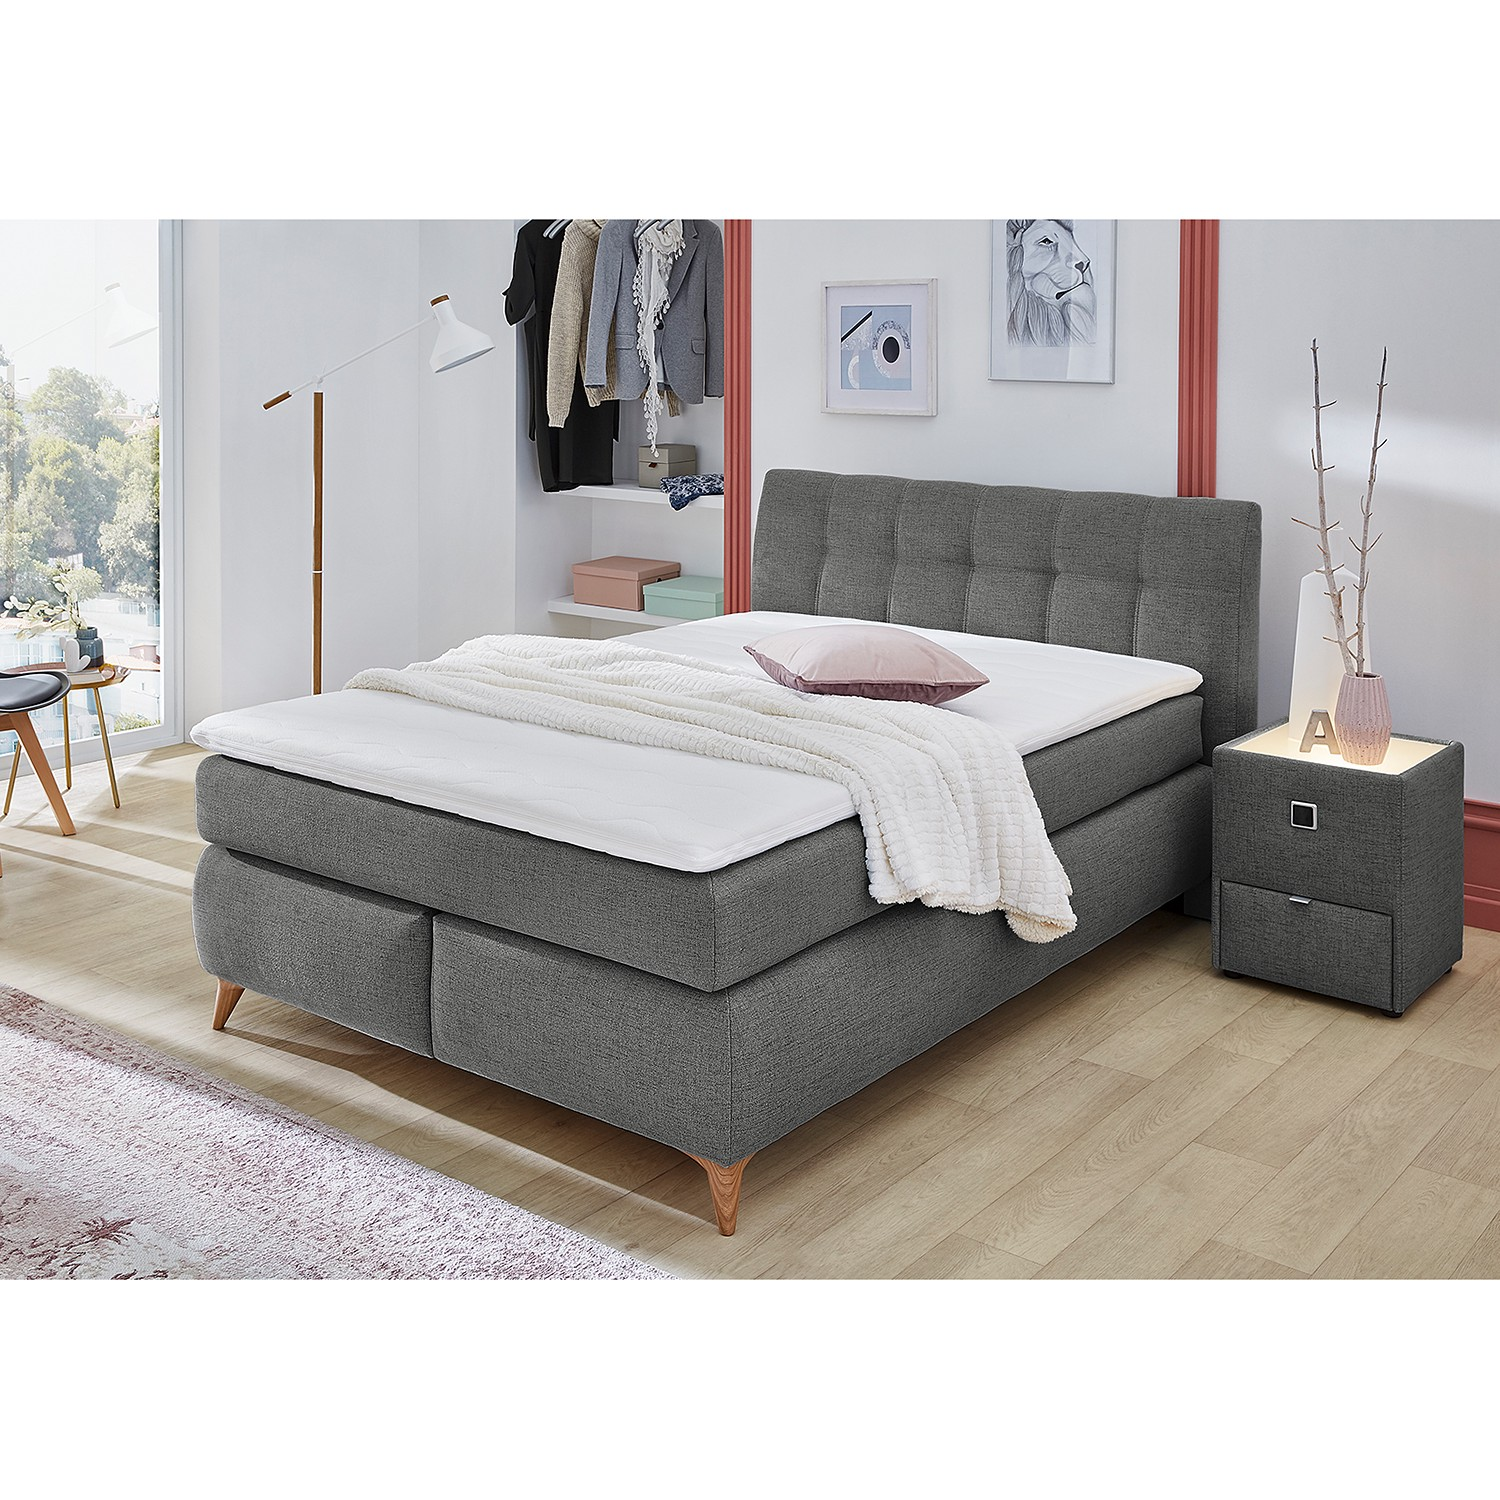 Kaltschaum Topper 140x200 Home24 Norrwood Boxspringbett Nan 140x200 Cm Webstoff Anthrazit Mit Matratze/kaltschaumtopper | Moebel-suchmaschine | Ladendirekt.de